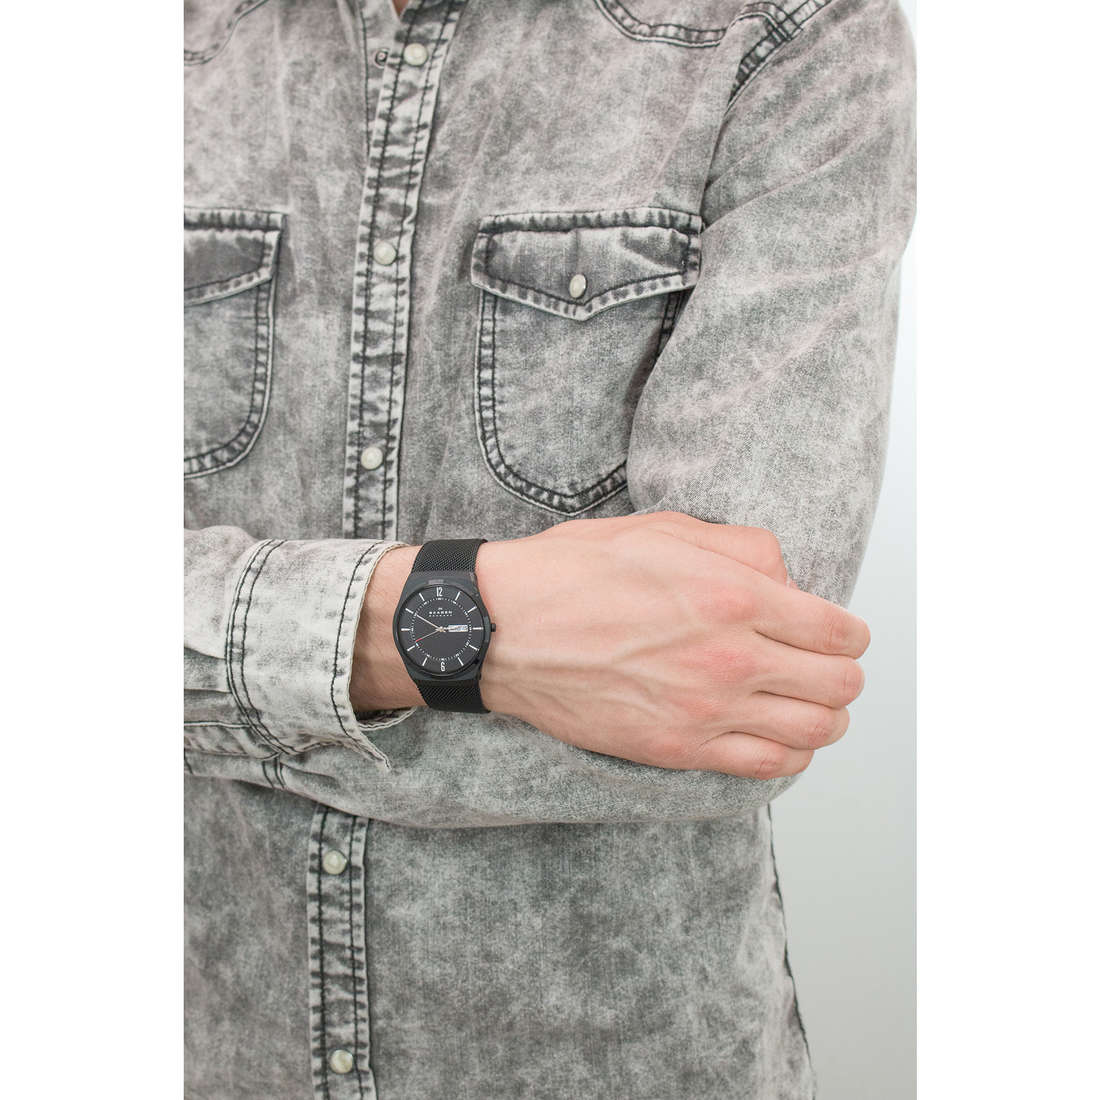 Skagen seul le temps Melbye homme SKW6006 photo wearing